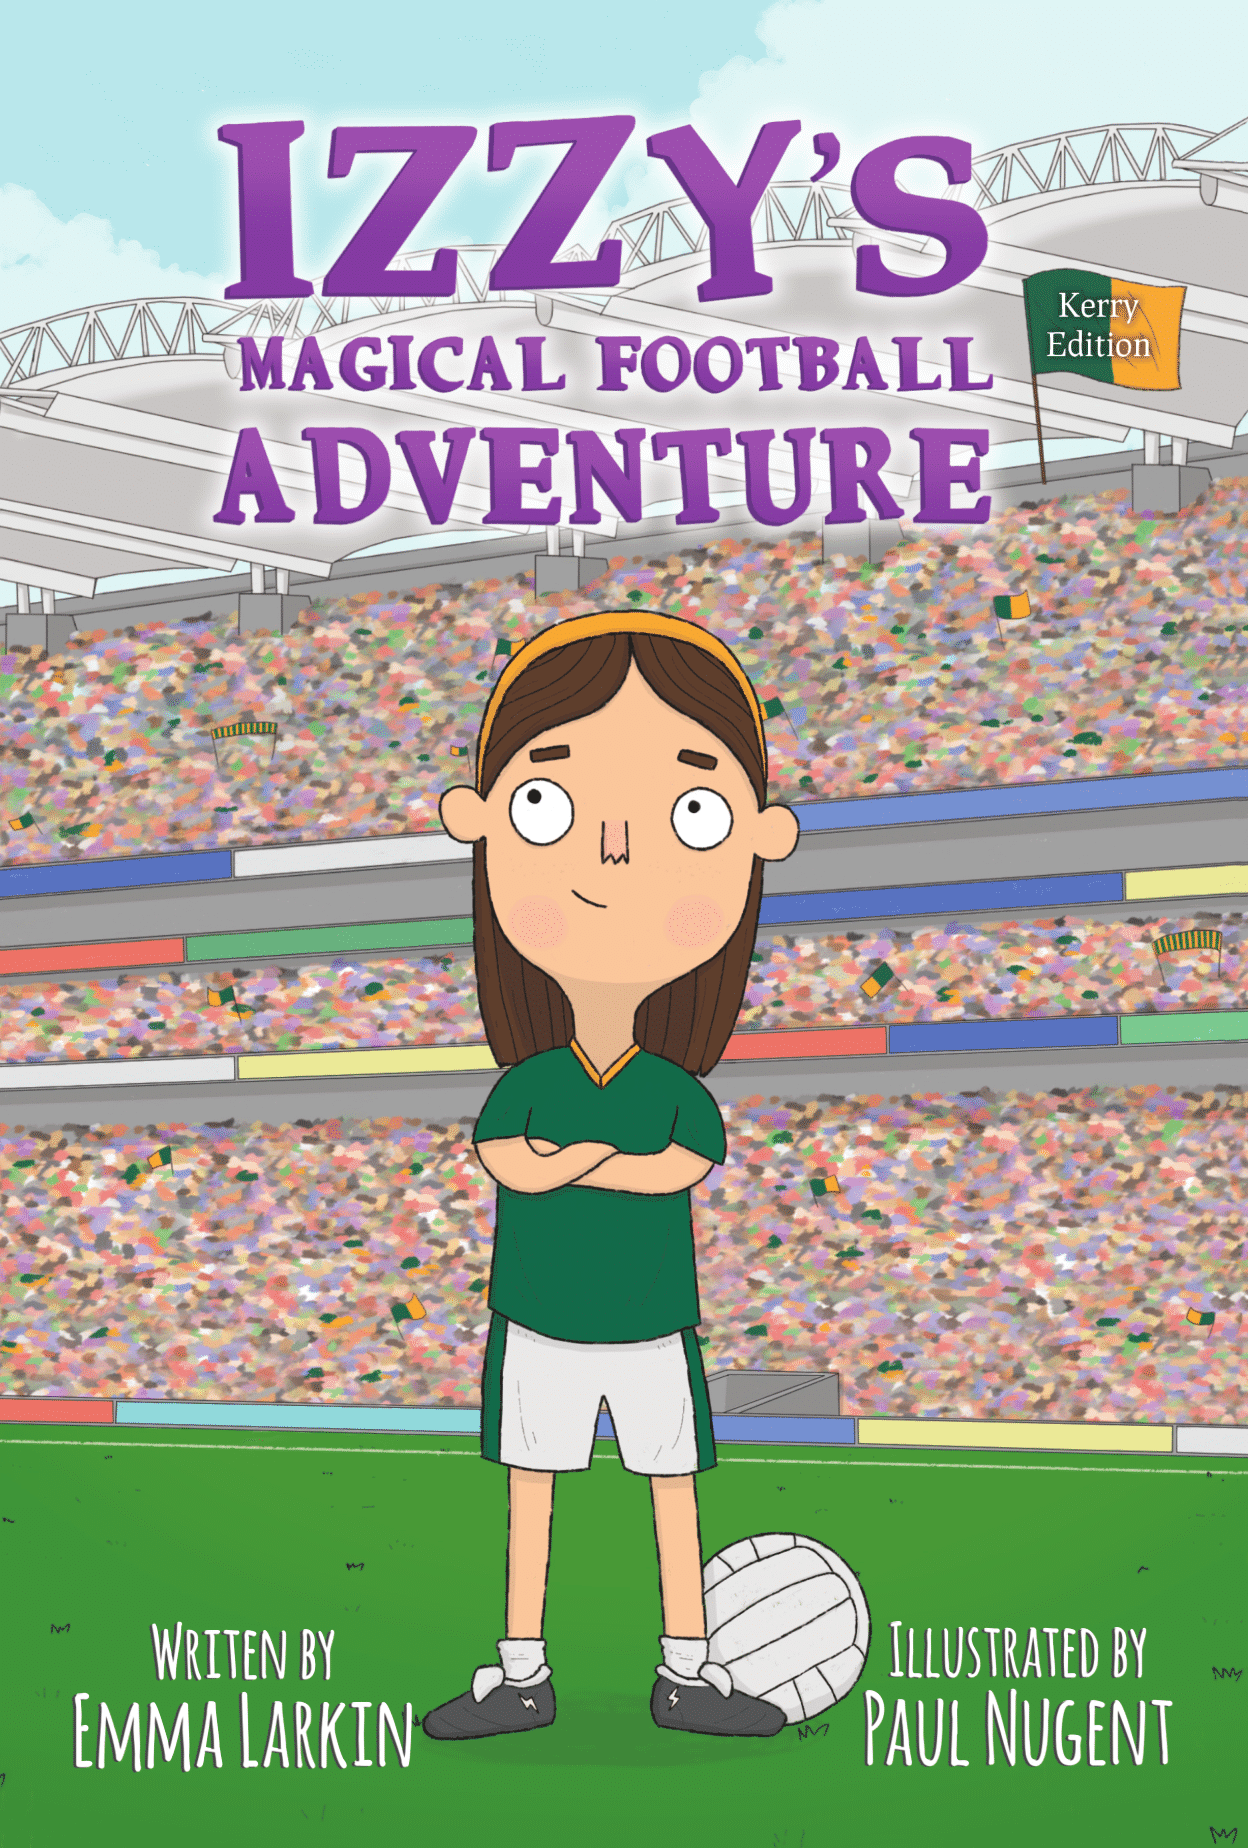 Izzys Magical Football Adventure Kerry